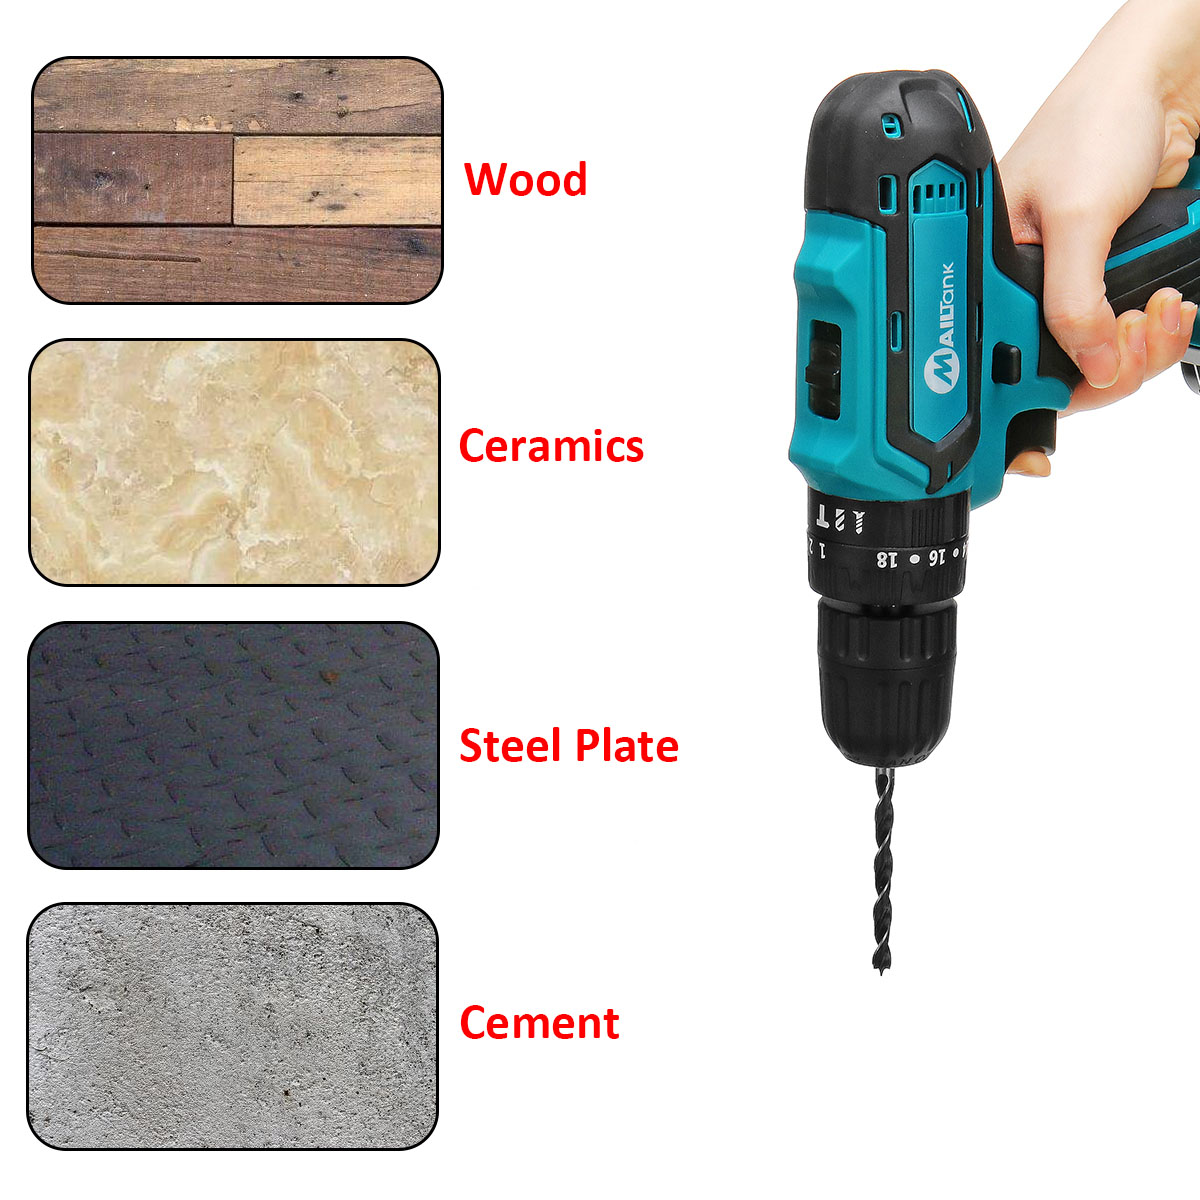 32V 2 Speed Power Drills 6000mah Cordless Drill 3 IN1 Electric Screwdriver Hammer Hand Drill 2 Batteries